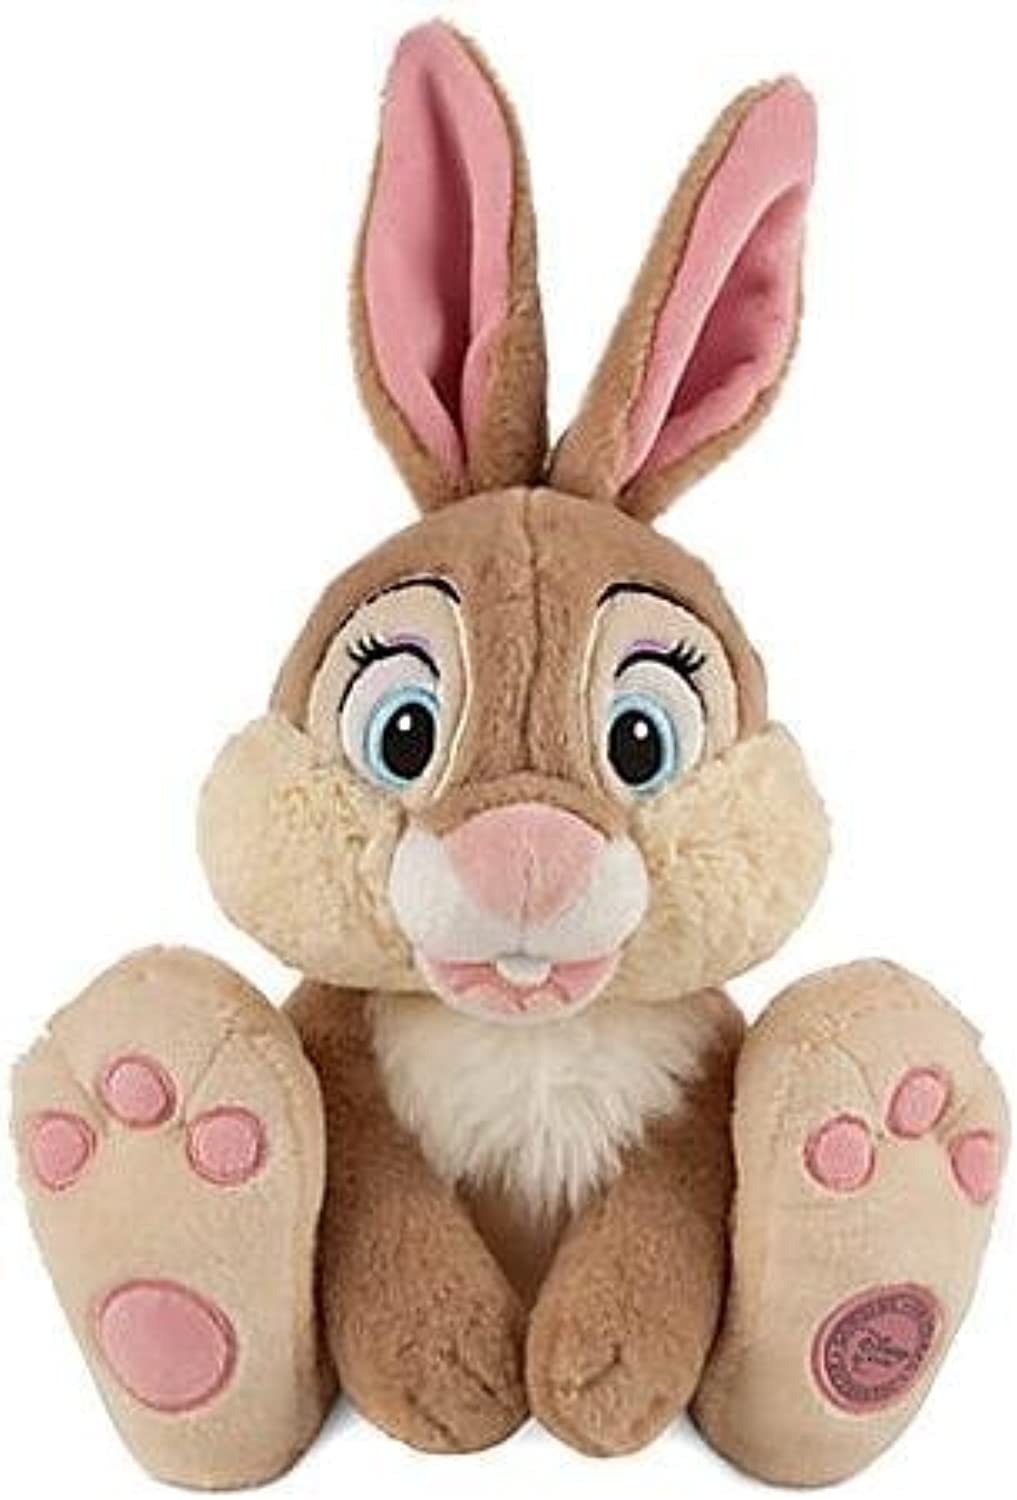 Disney Bambi Exclusive 14 Inch Plush Miss Bunny by Disney